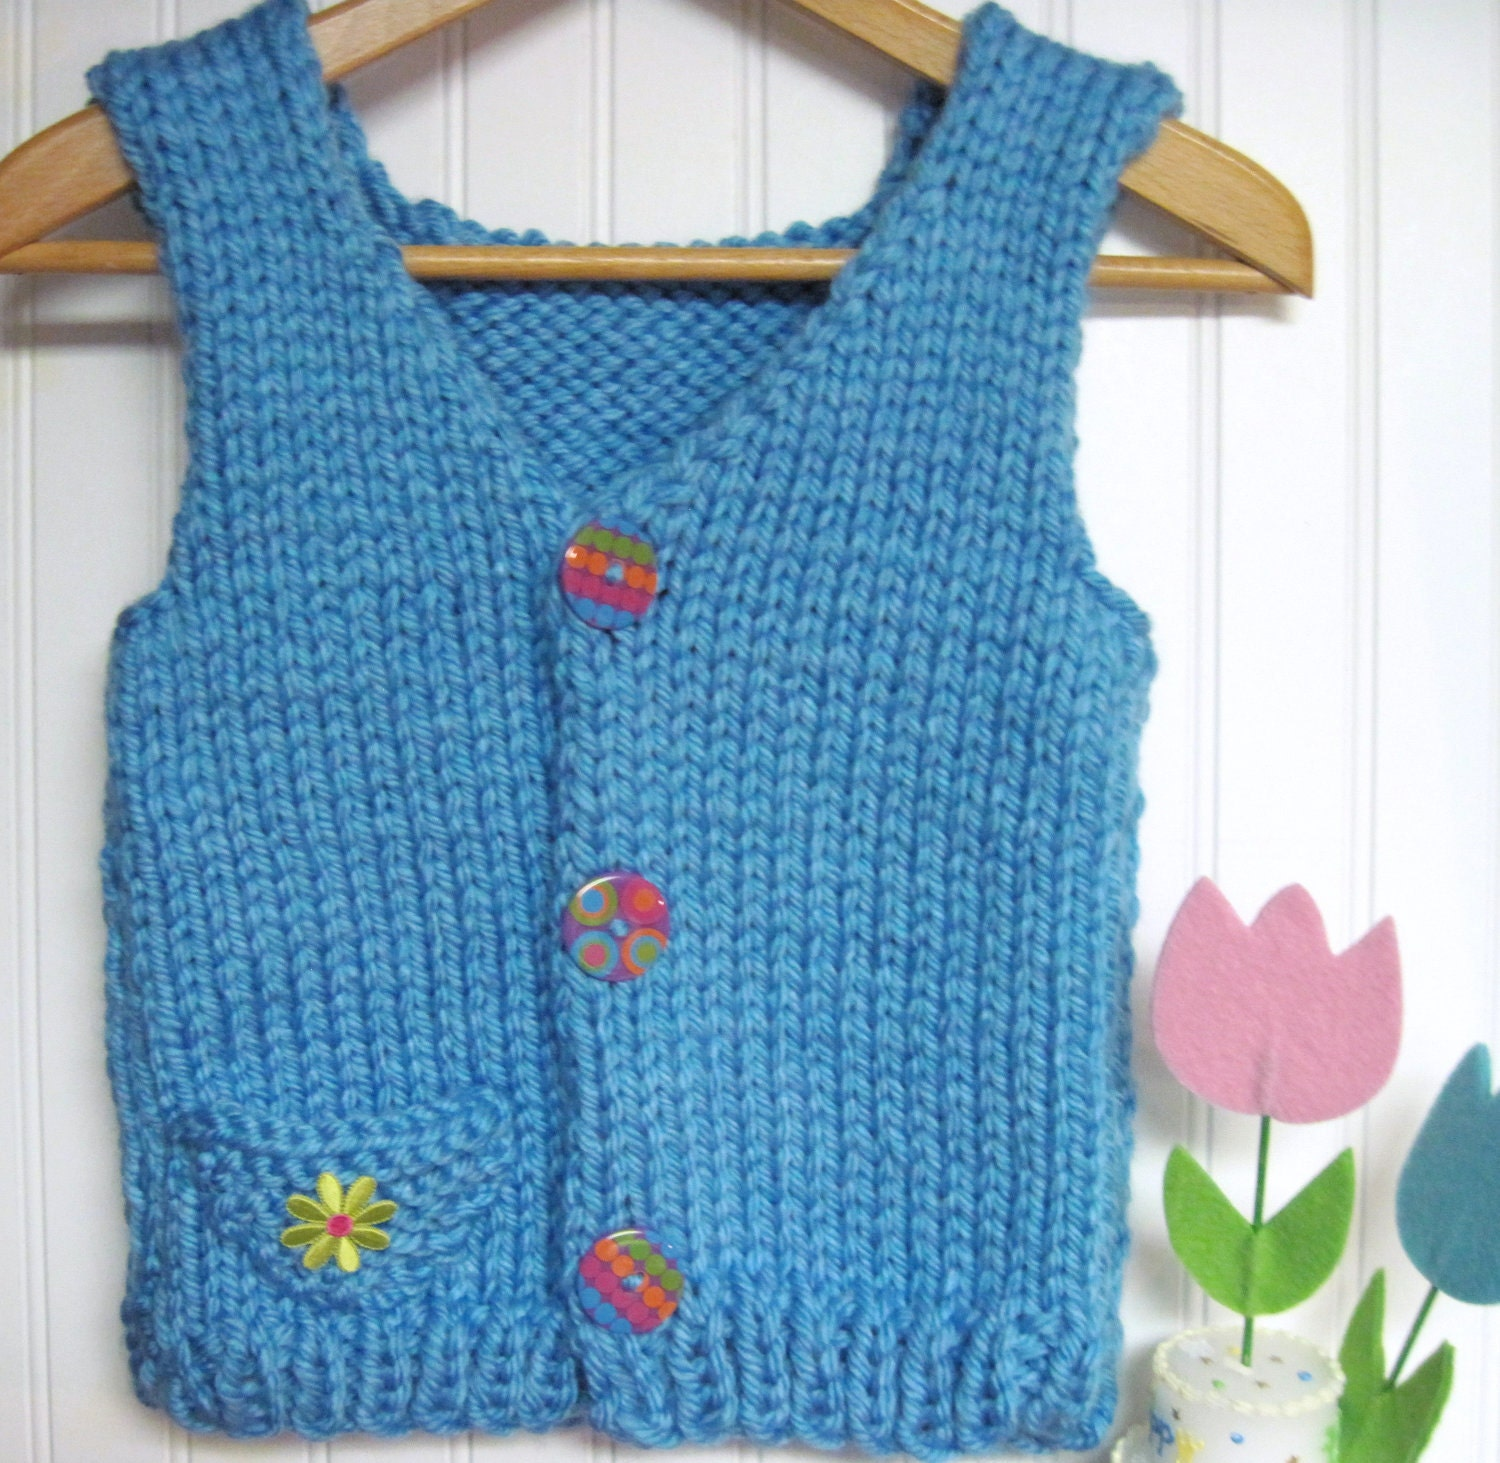 Knitting Pattern Vest Bulky Yarn : Childs Vest Bulky Yarn Knitting Pattern for 5 to 12